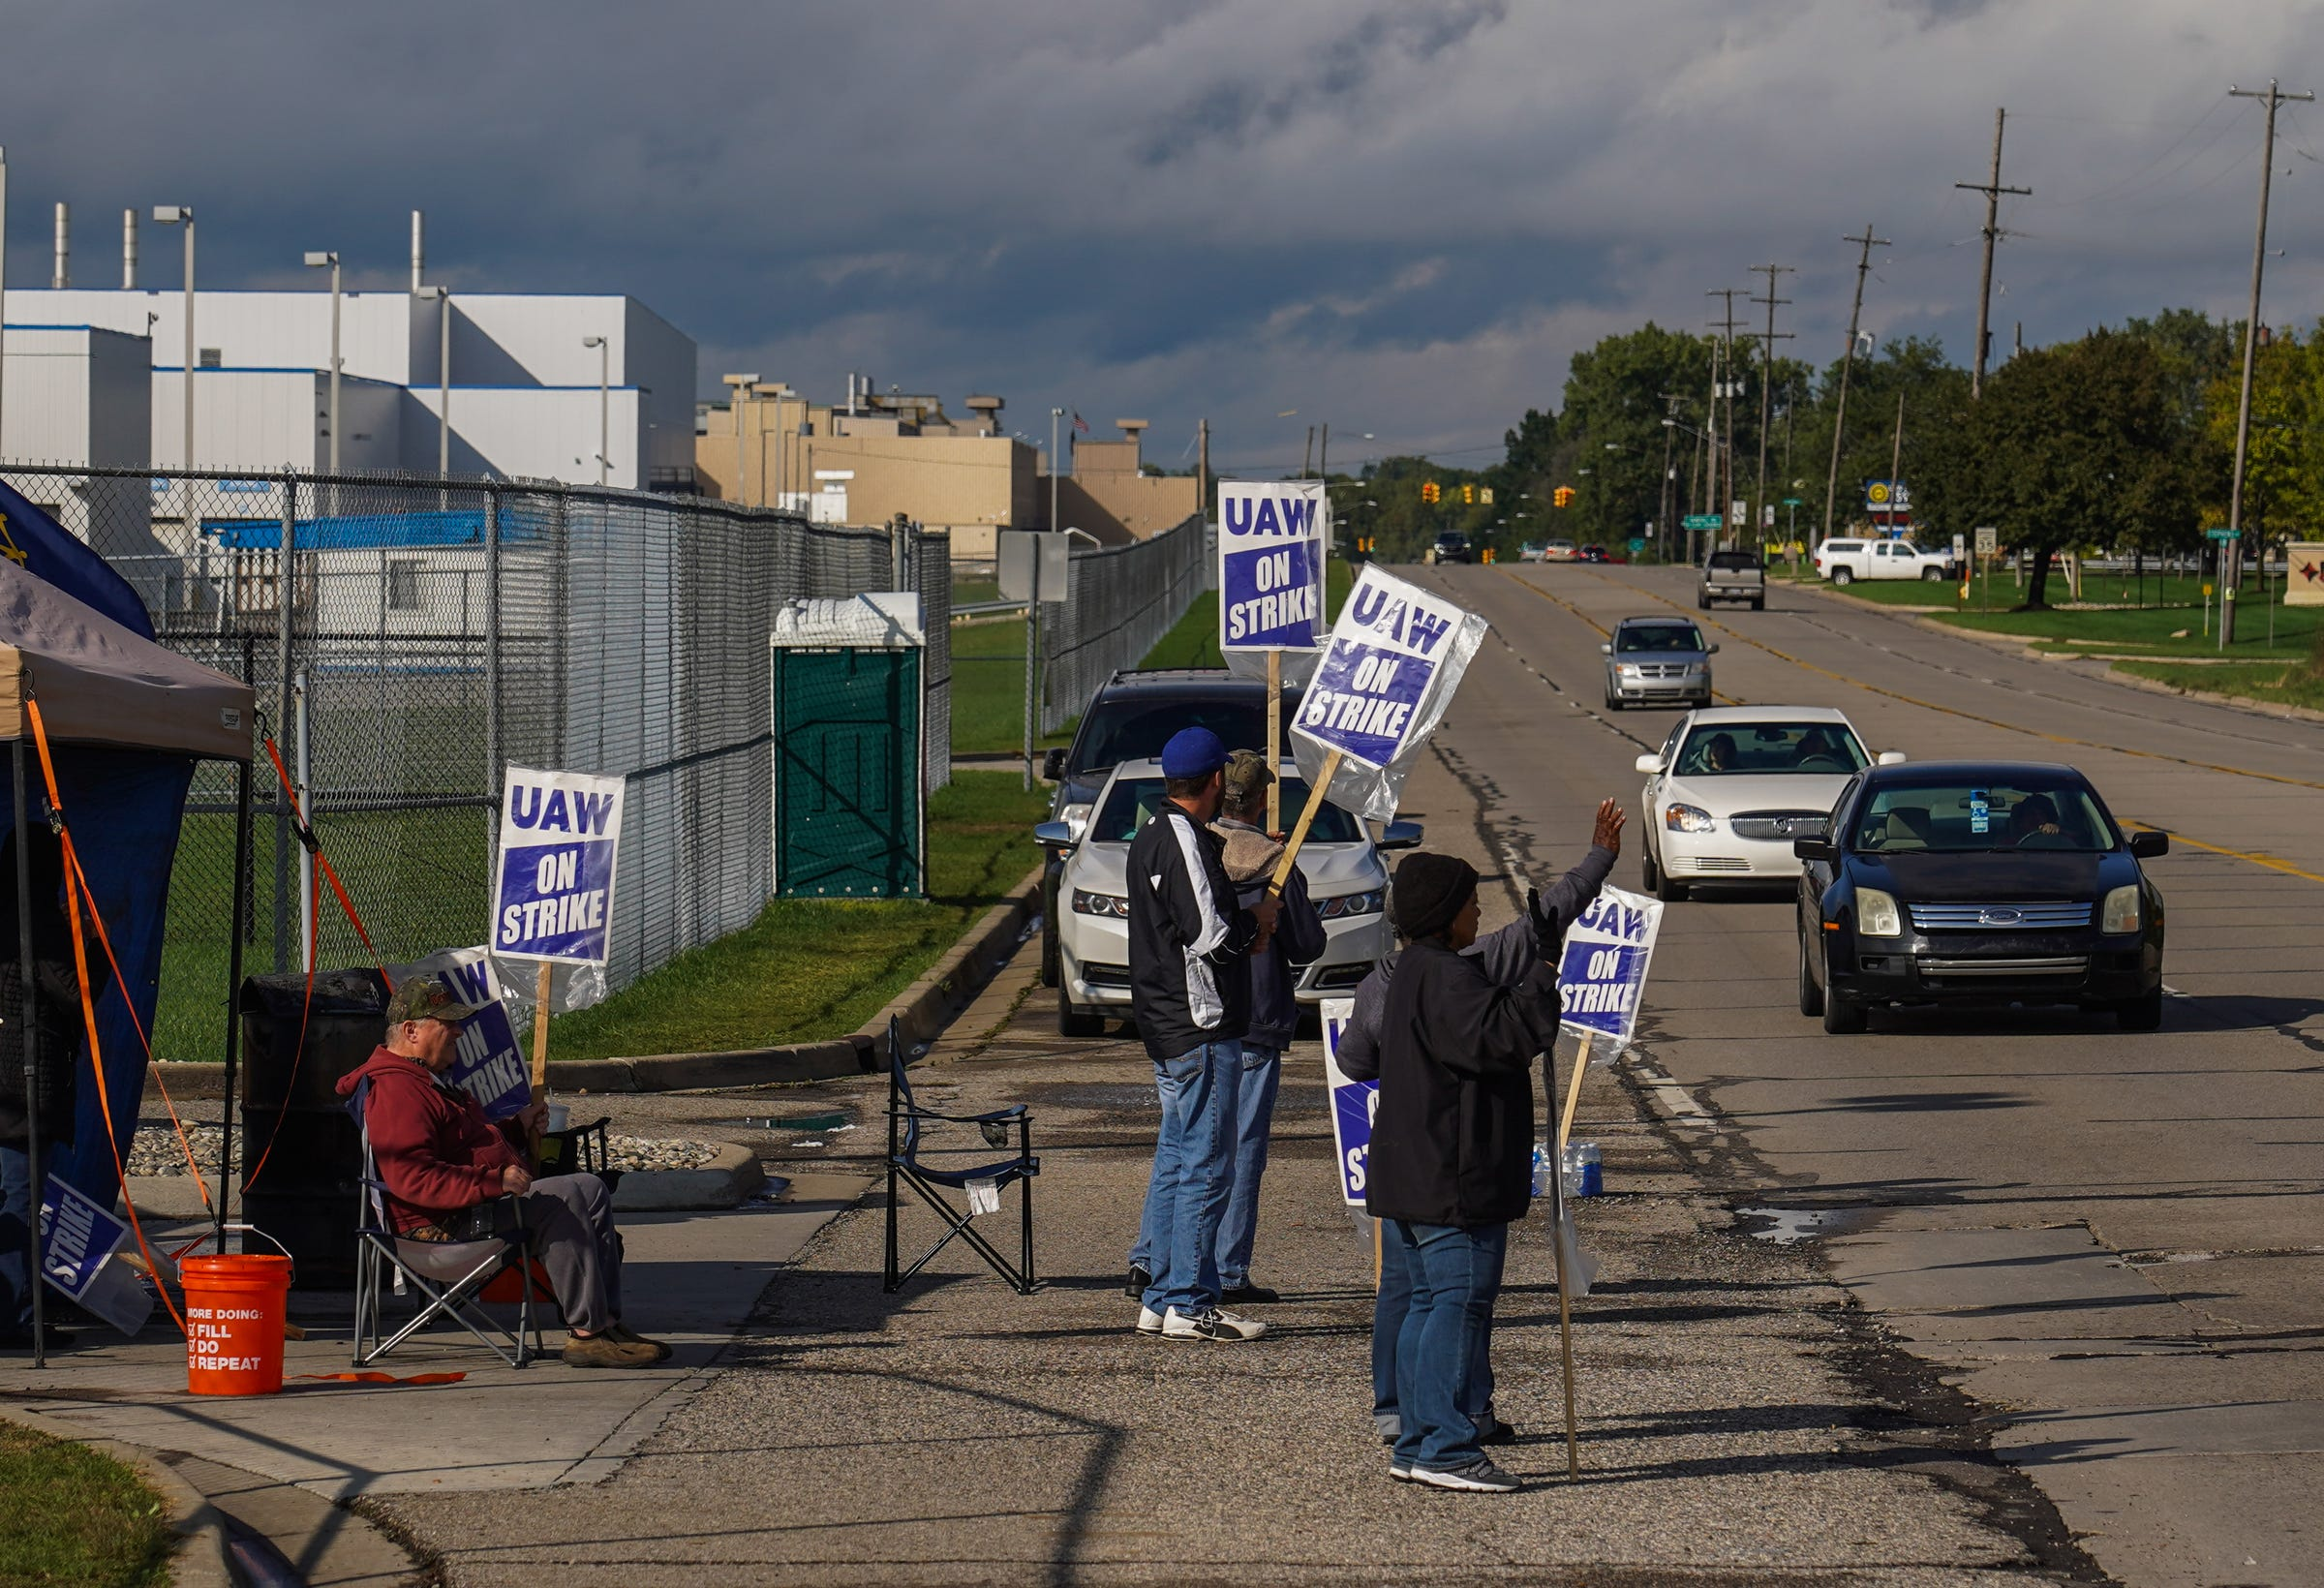 Striking UAW reports  good progress  in talks with GM